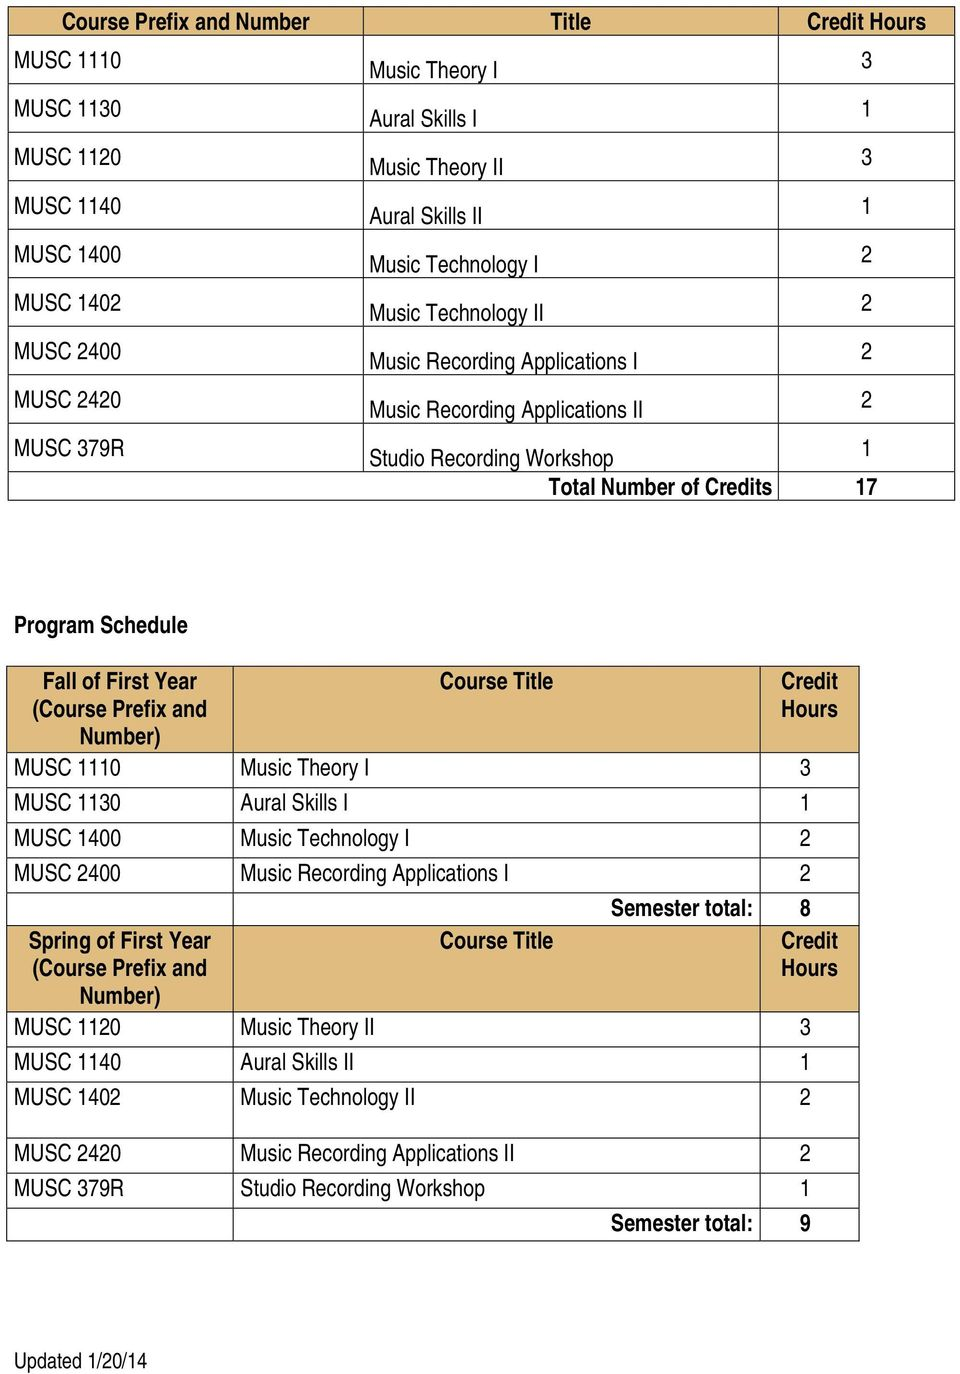 Number) Course Title MUSC 0 Music Theory I MUSC 0 Aural Skills I MUSC 400 Music Technology I MUSC 400 Music Recording Applications I Spring of First Year (Course Prefix and Number) Course Title